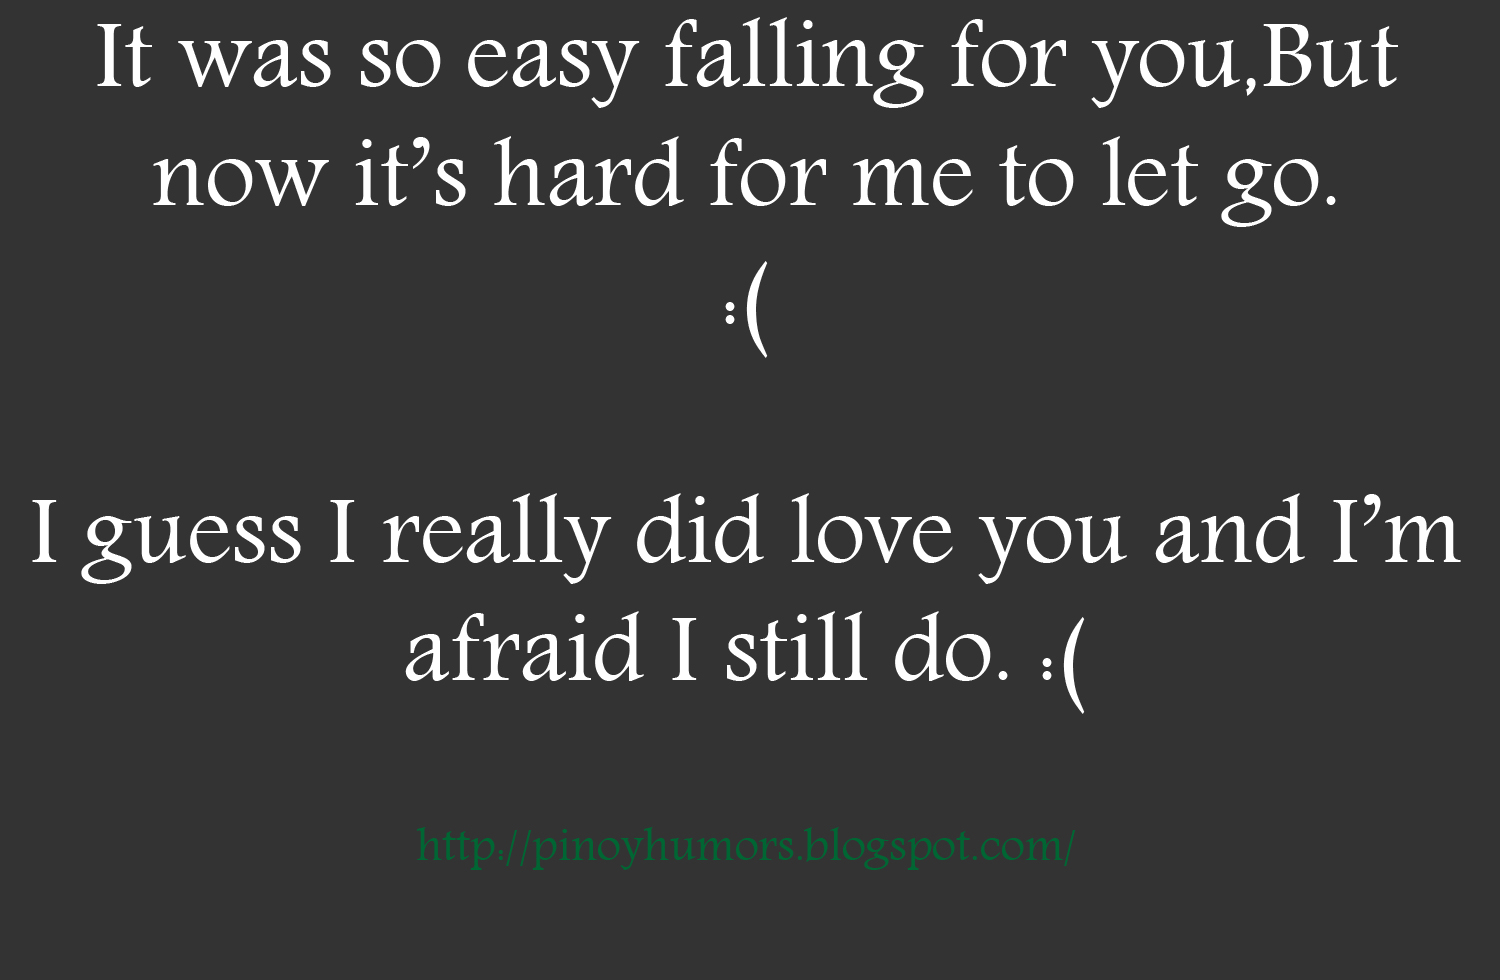 Let Go Quotes Pinoyhumor It's Hard To Let You Go Love Quotes